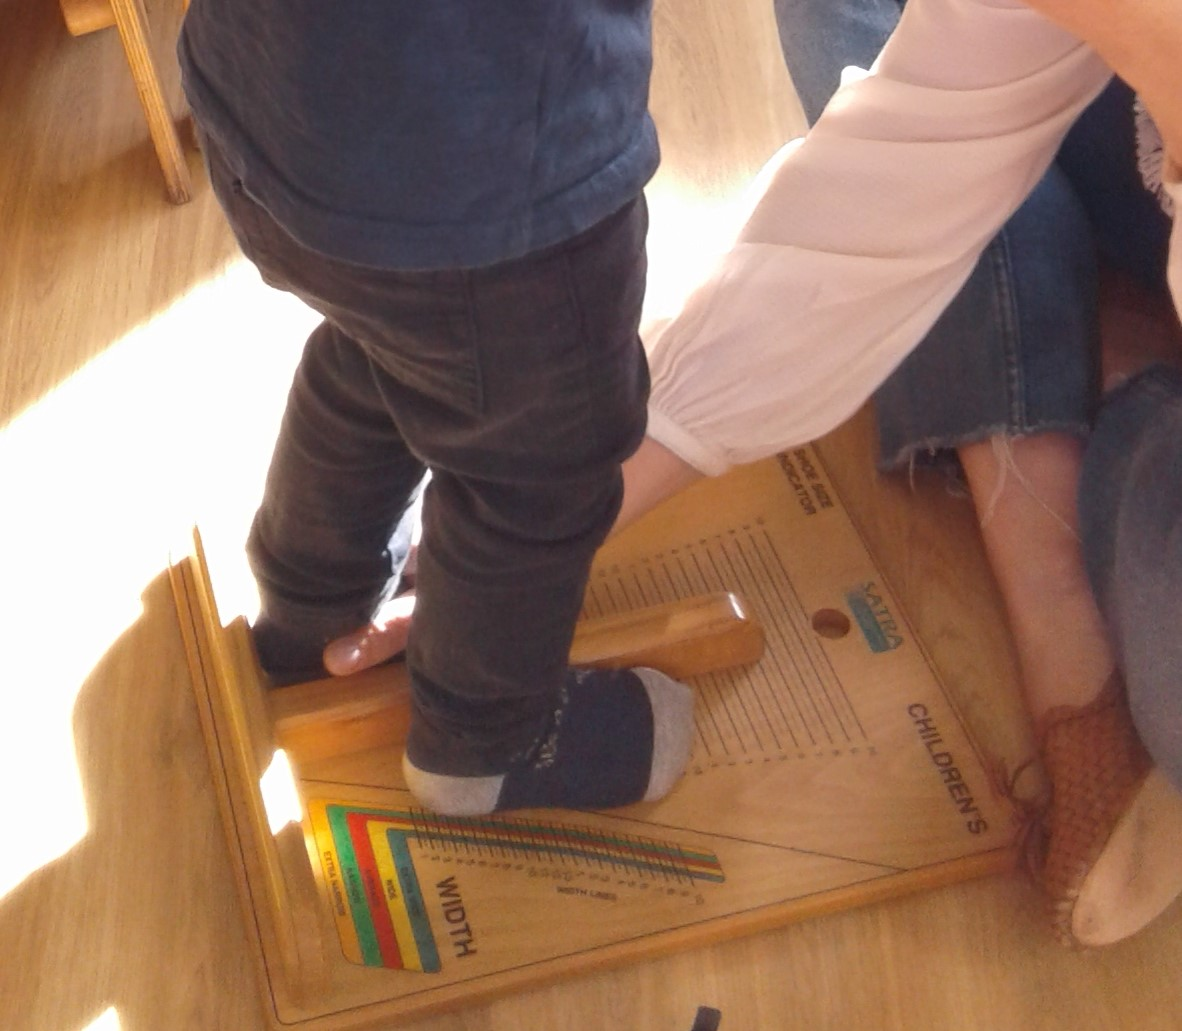 The toddlers had an exciting visit from one of our kind parents this week, all had a great time getting their feet measured!